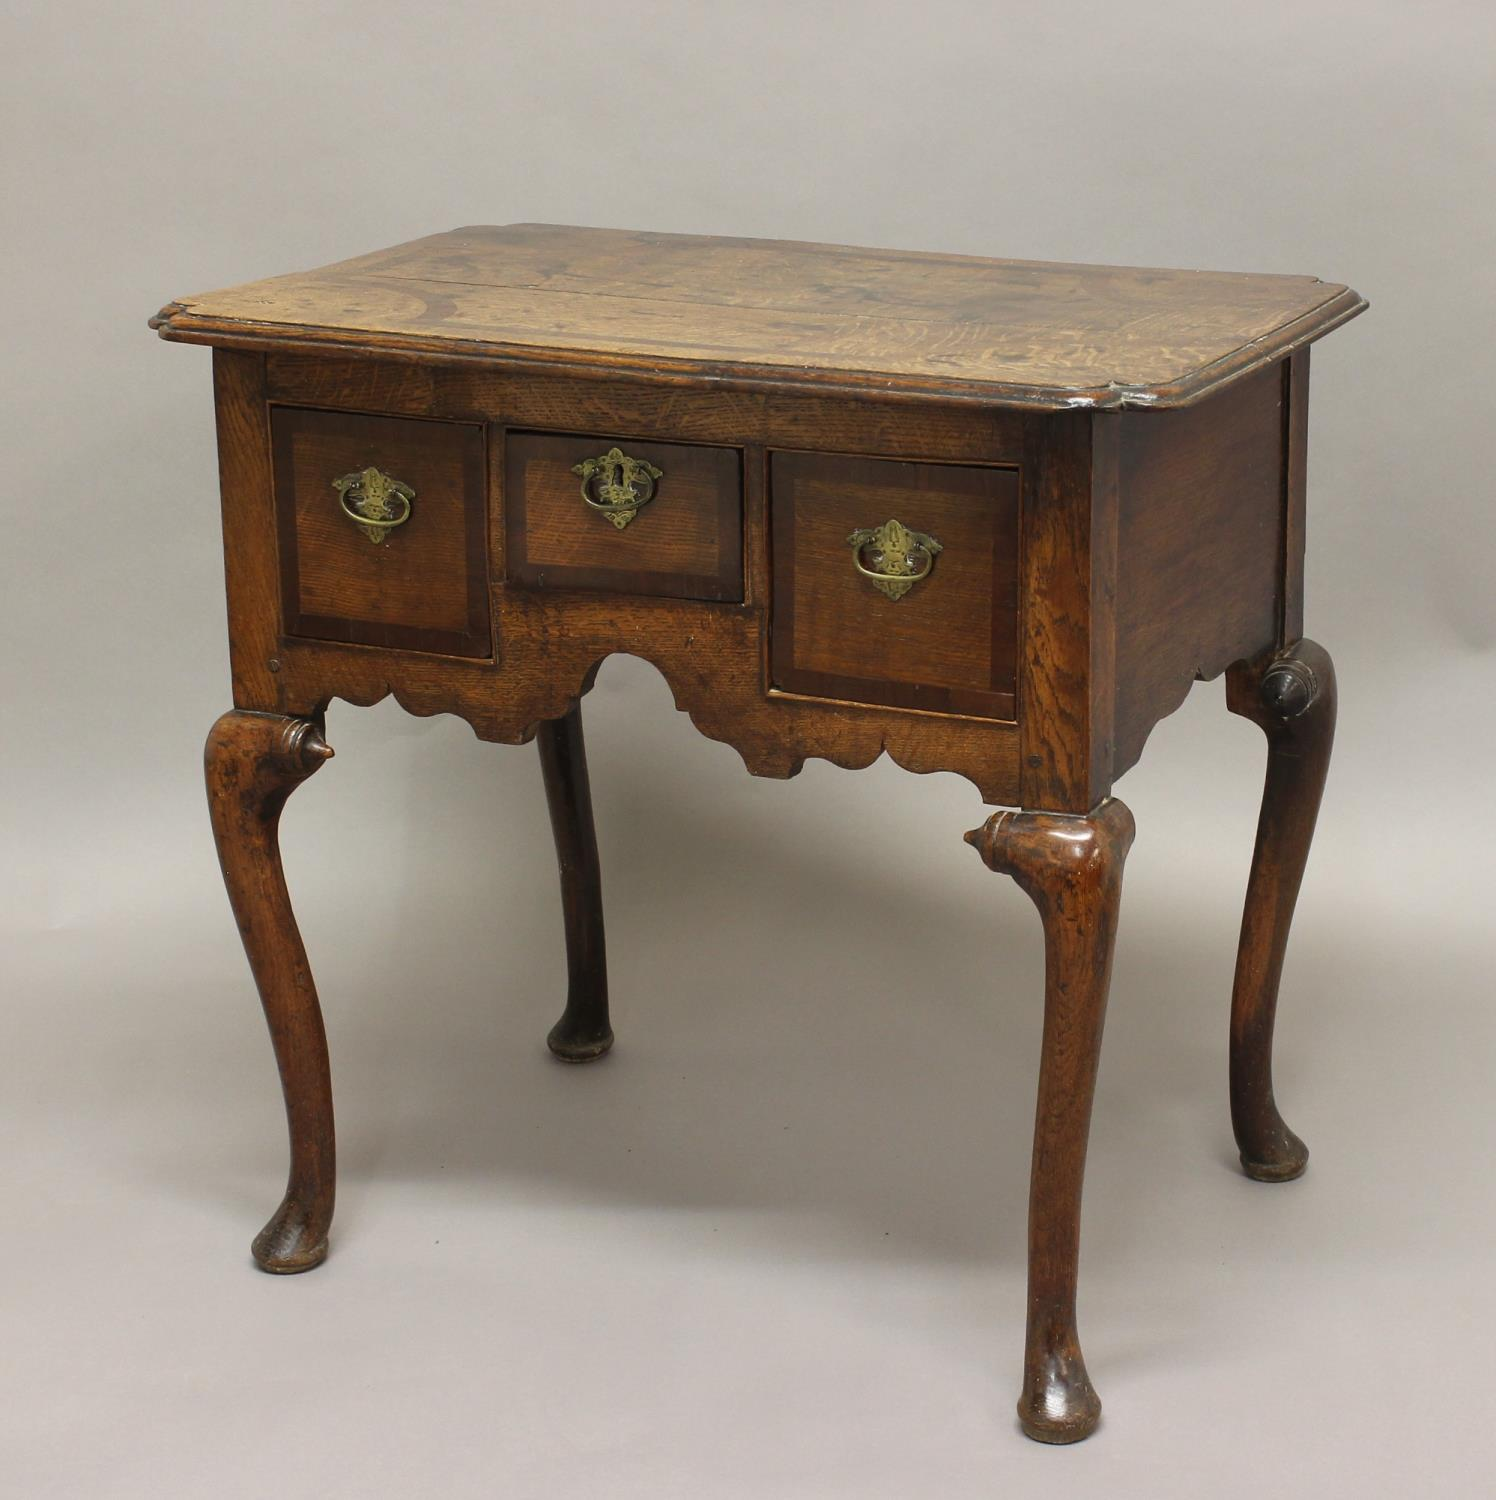 AN 18TH CENTURY OAK LOWBOY, the inlaid shaped rectangular top above three drawers on a carved